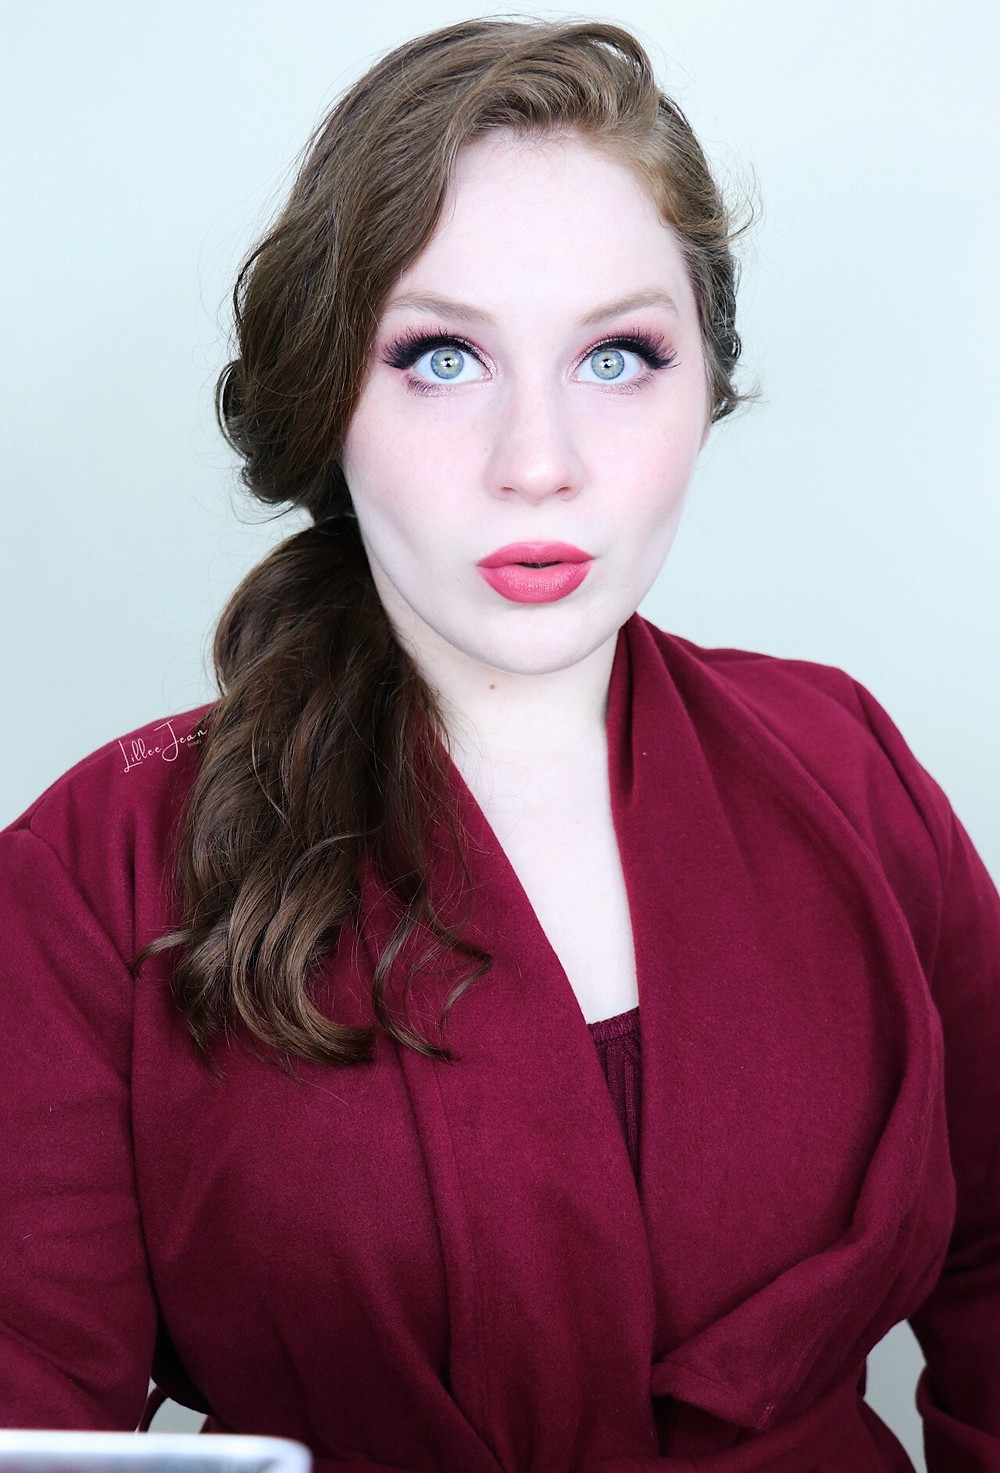 Rose Makeup   Makeup Revolution Forever Flawless AUTUMN Tutorial 2021   Lillee Jean